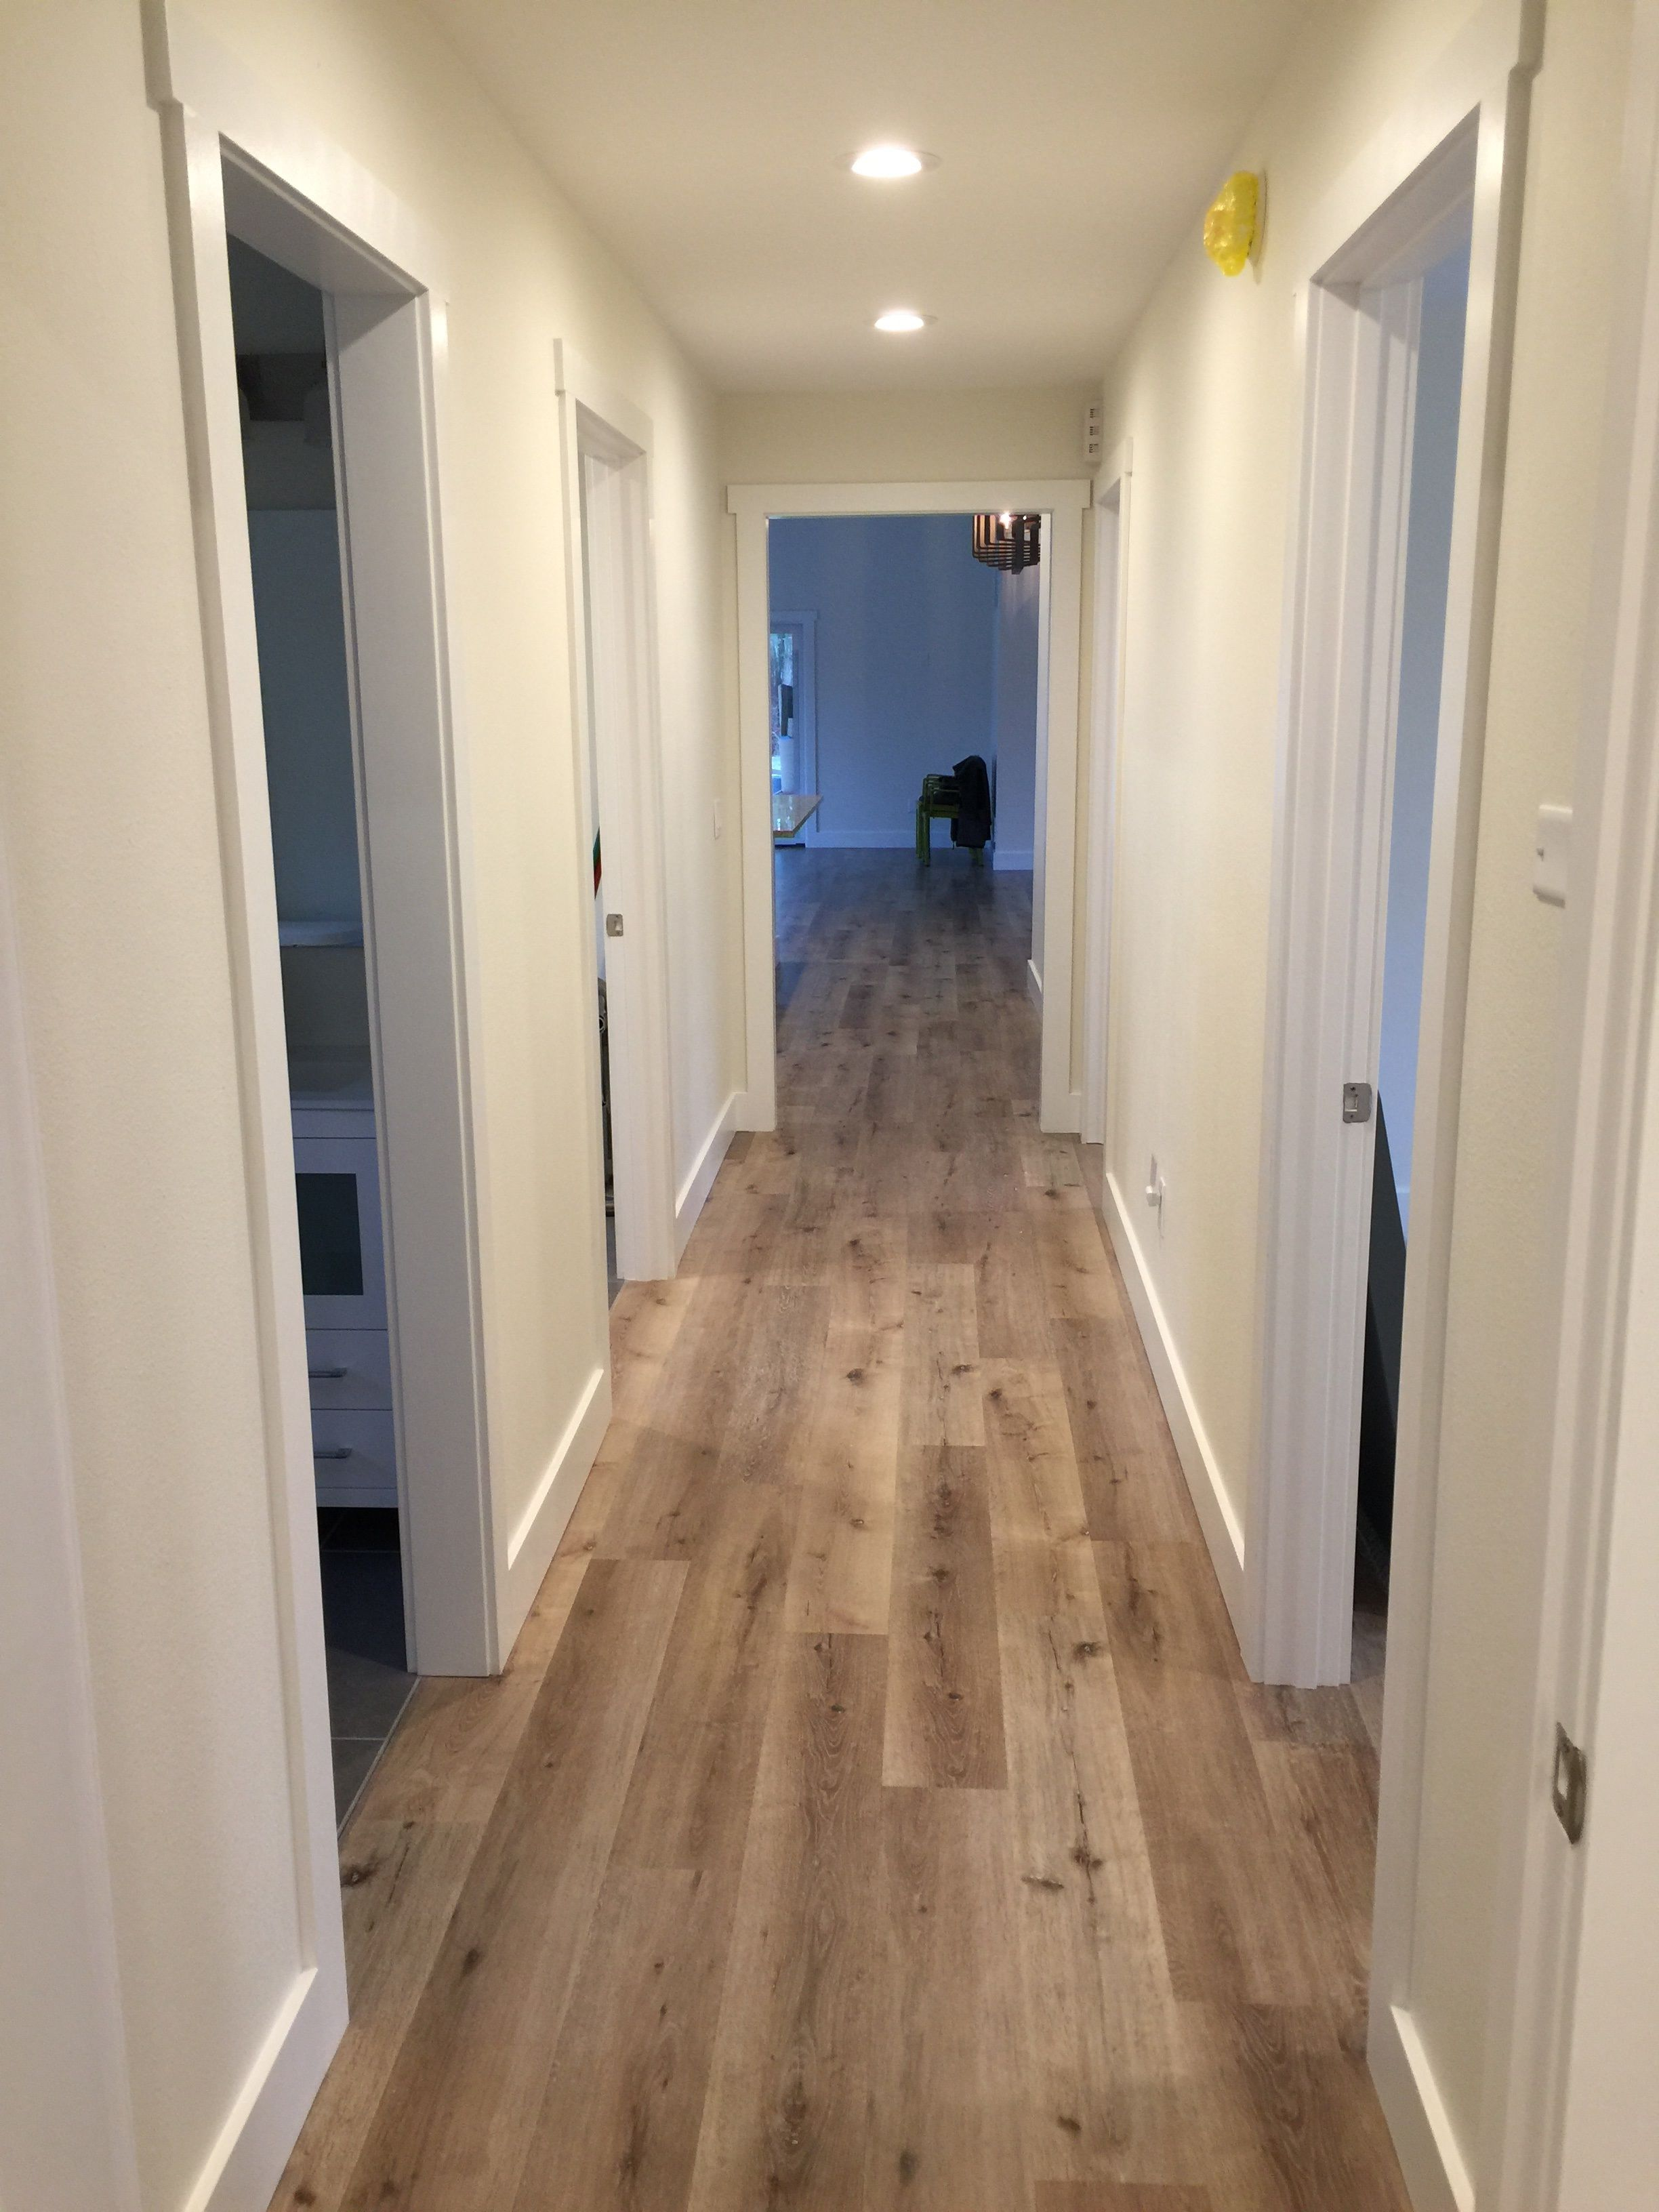 Vinyl Wood Plank Flooring, RapidLocking System, Cali